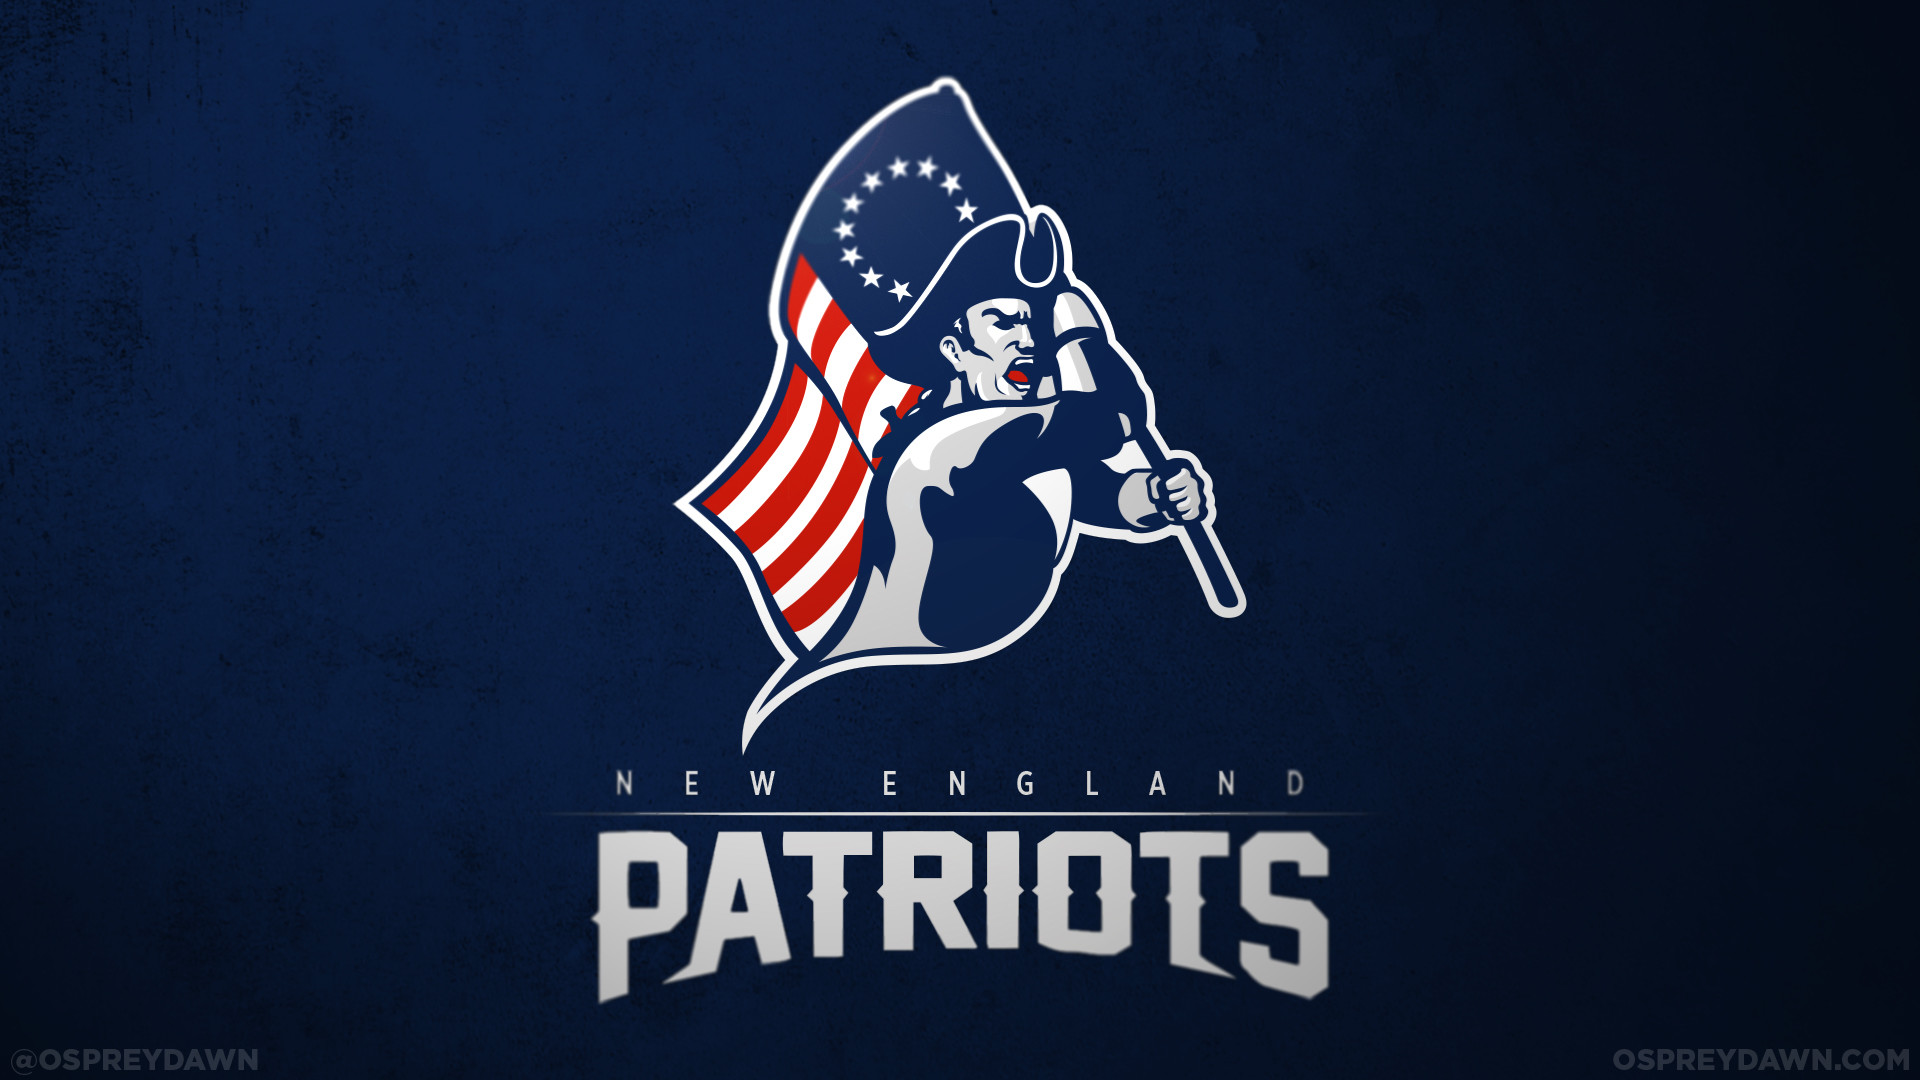 This logo is one in a series of 32 NFL Logo redesigns. The NFL .